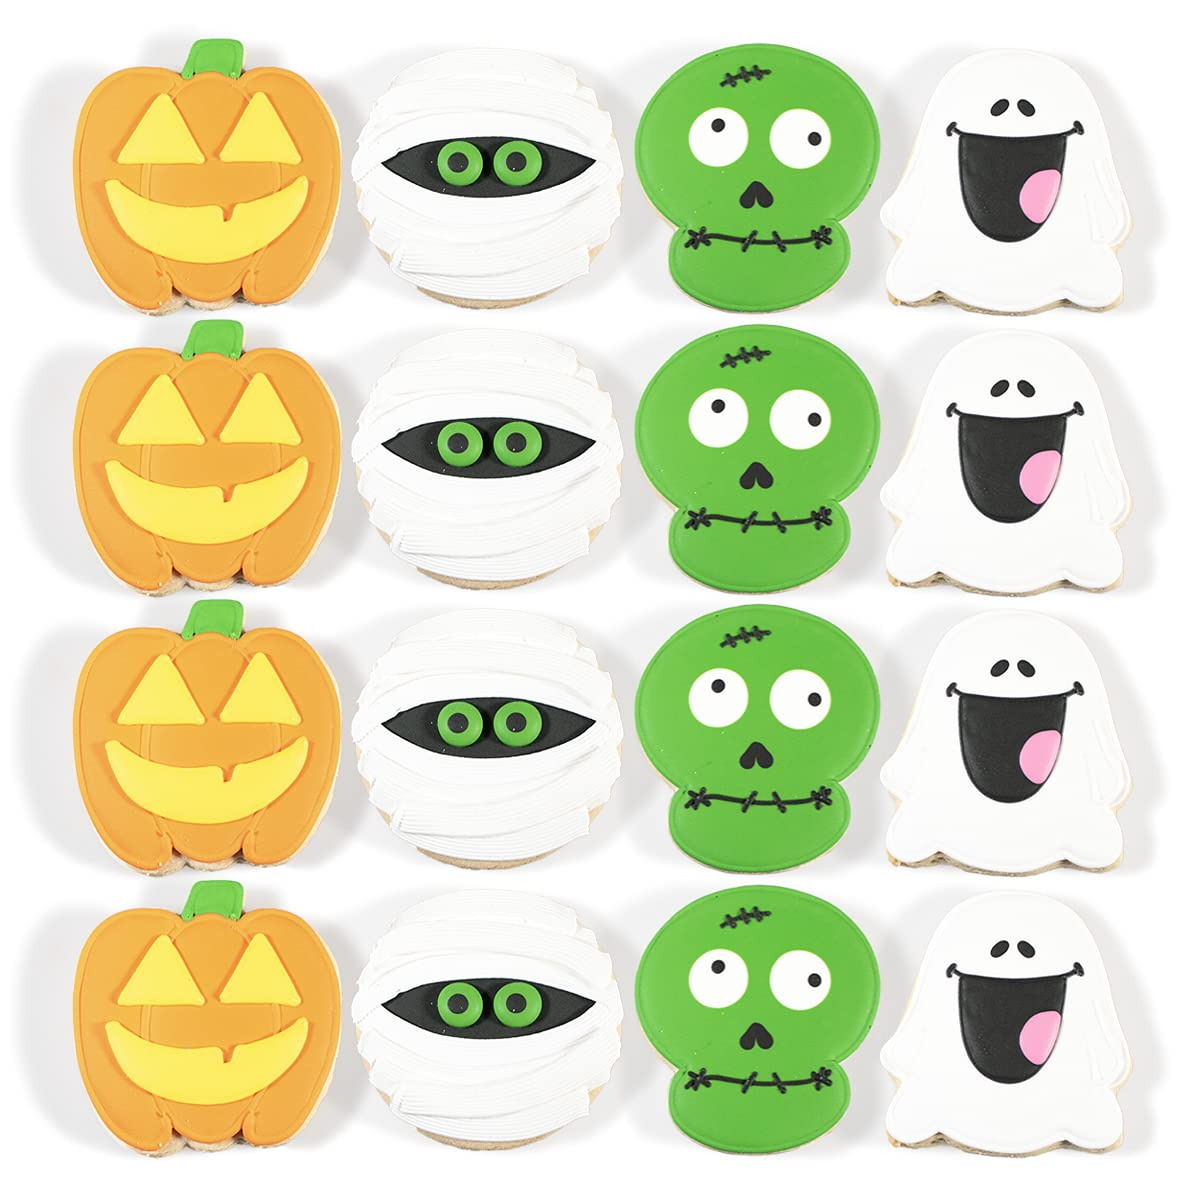 HALLOWEEN Cookies – Hand Decorated Butter Cookies – 1ct, Pack of 16